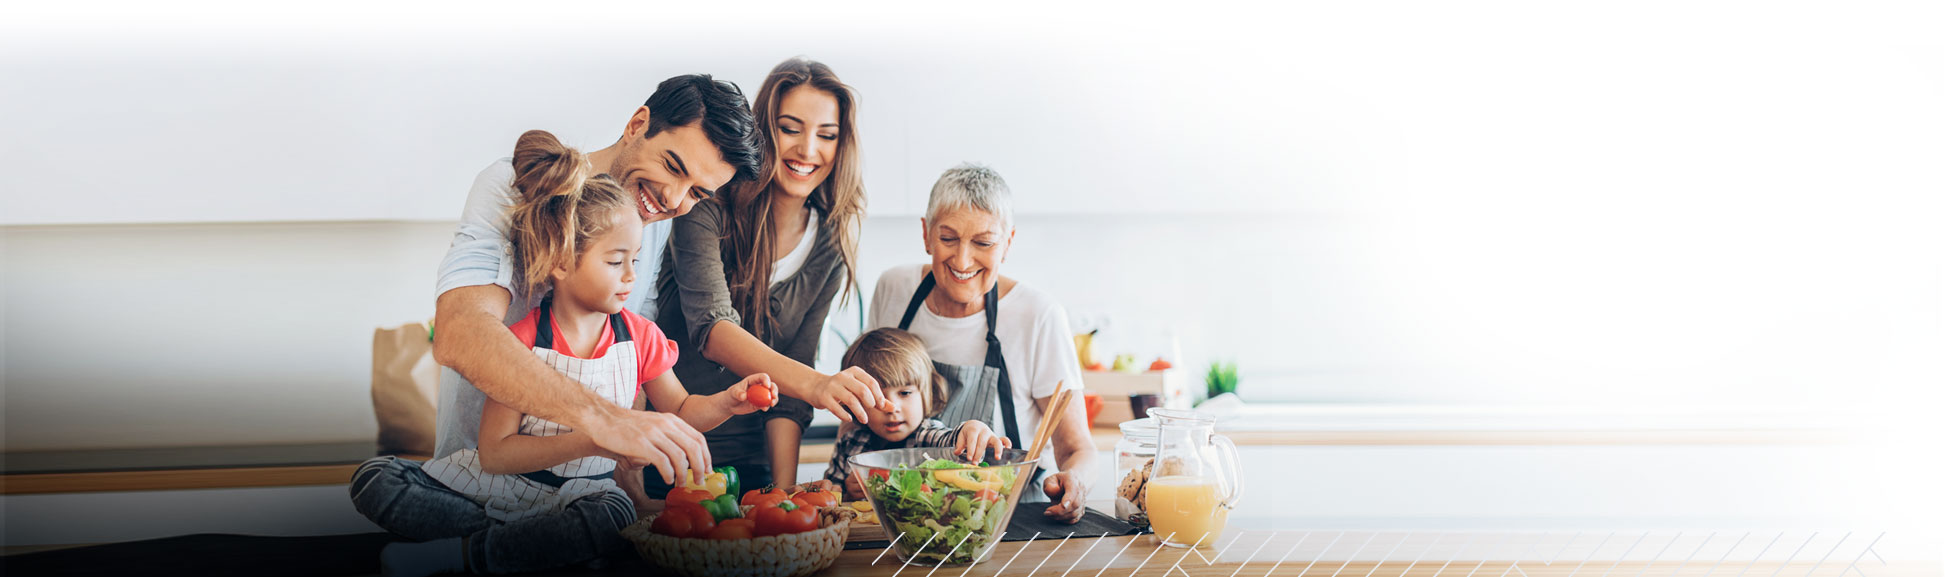 Family in a kitchen holding fruits and vegetables